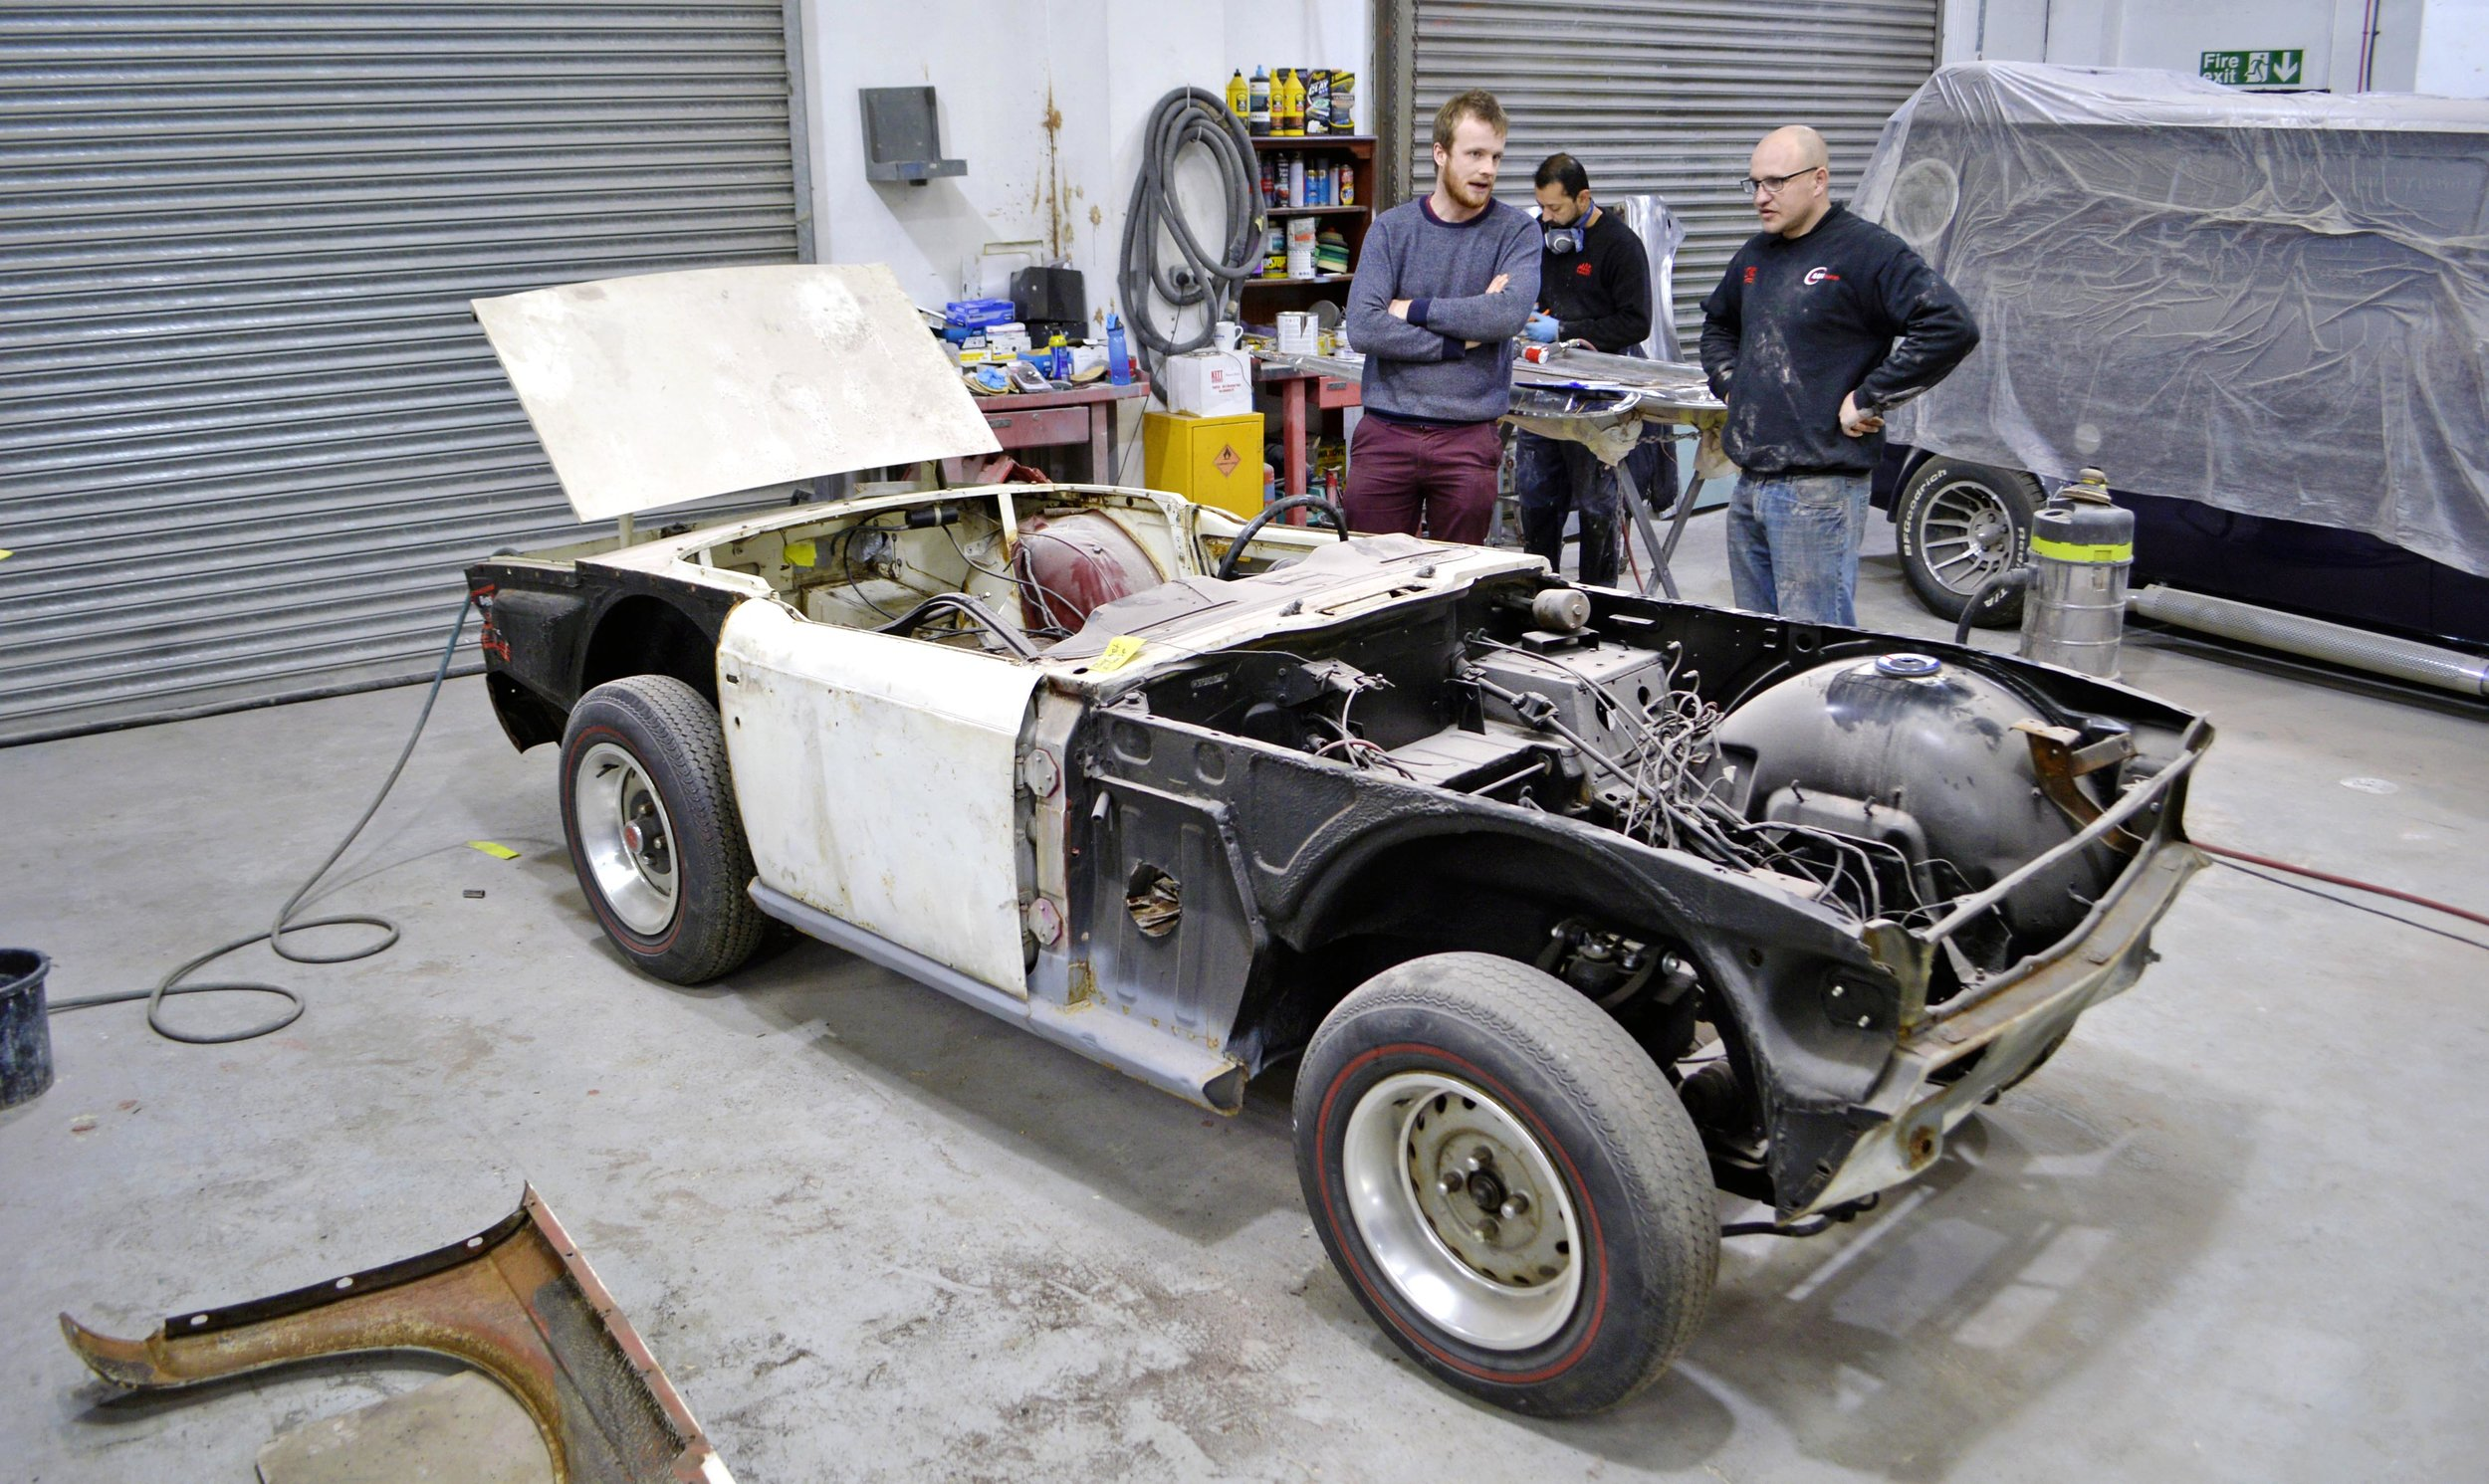 Along with the arrival of the amazing Standard Ten, our Triumph TR6 will be rebuilt live on stage at the Practical Classics Classic Car & Restoration Show with Discovery at the NEC on March 22-24. Read about how the lads are getting on with the preparation work in the April issue of Practical Classics!